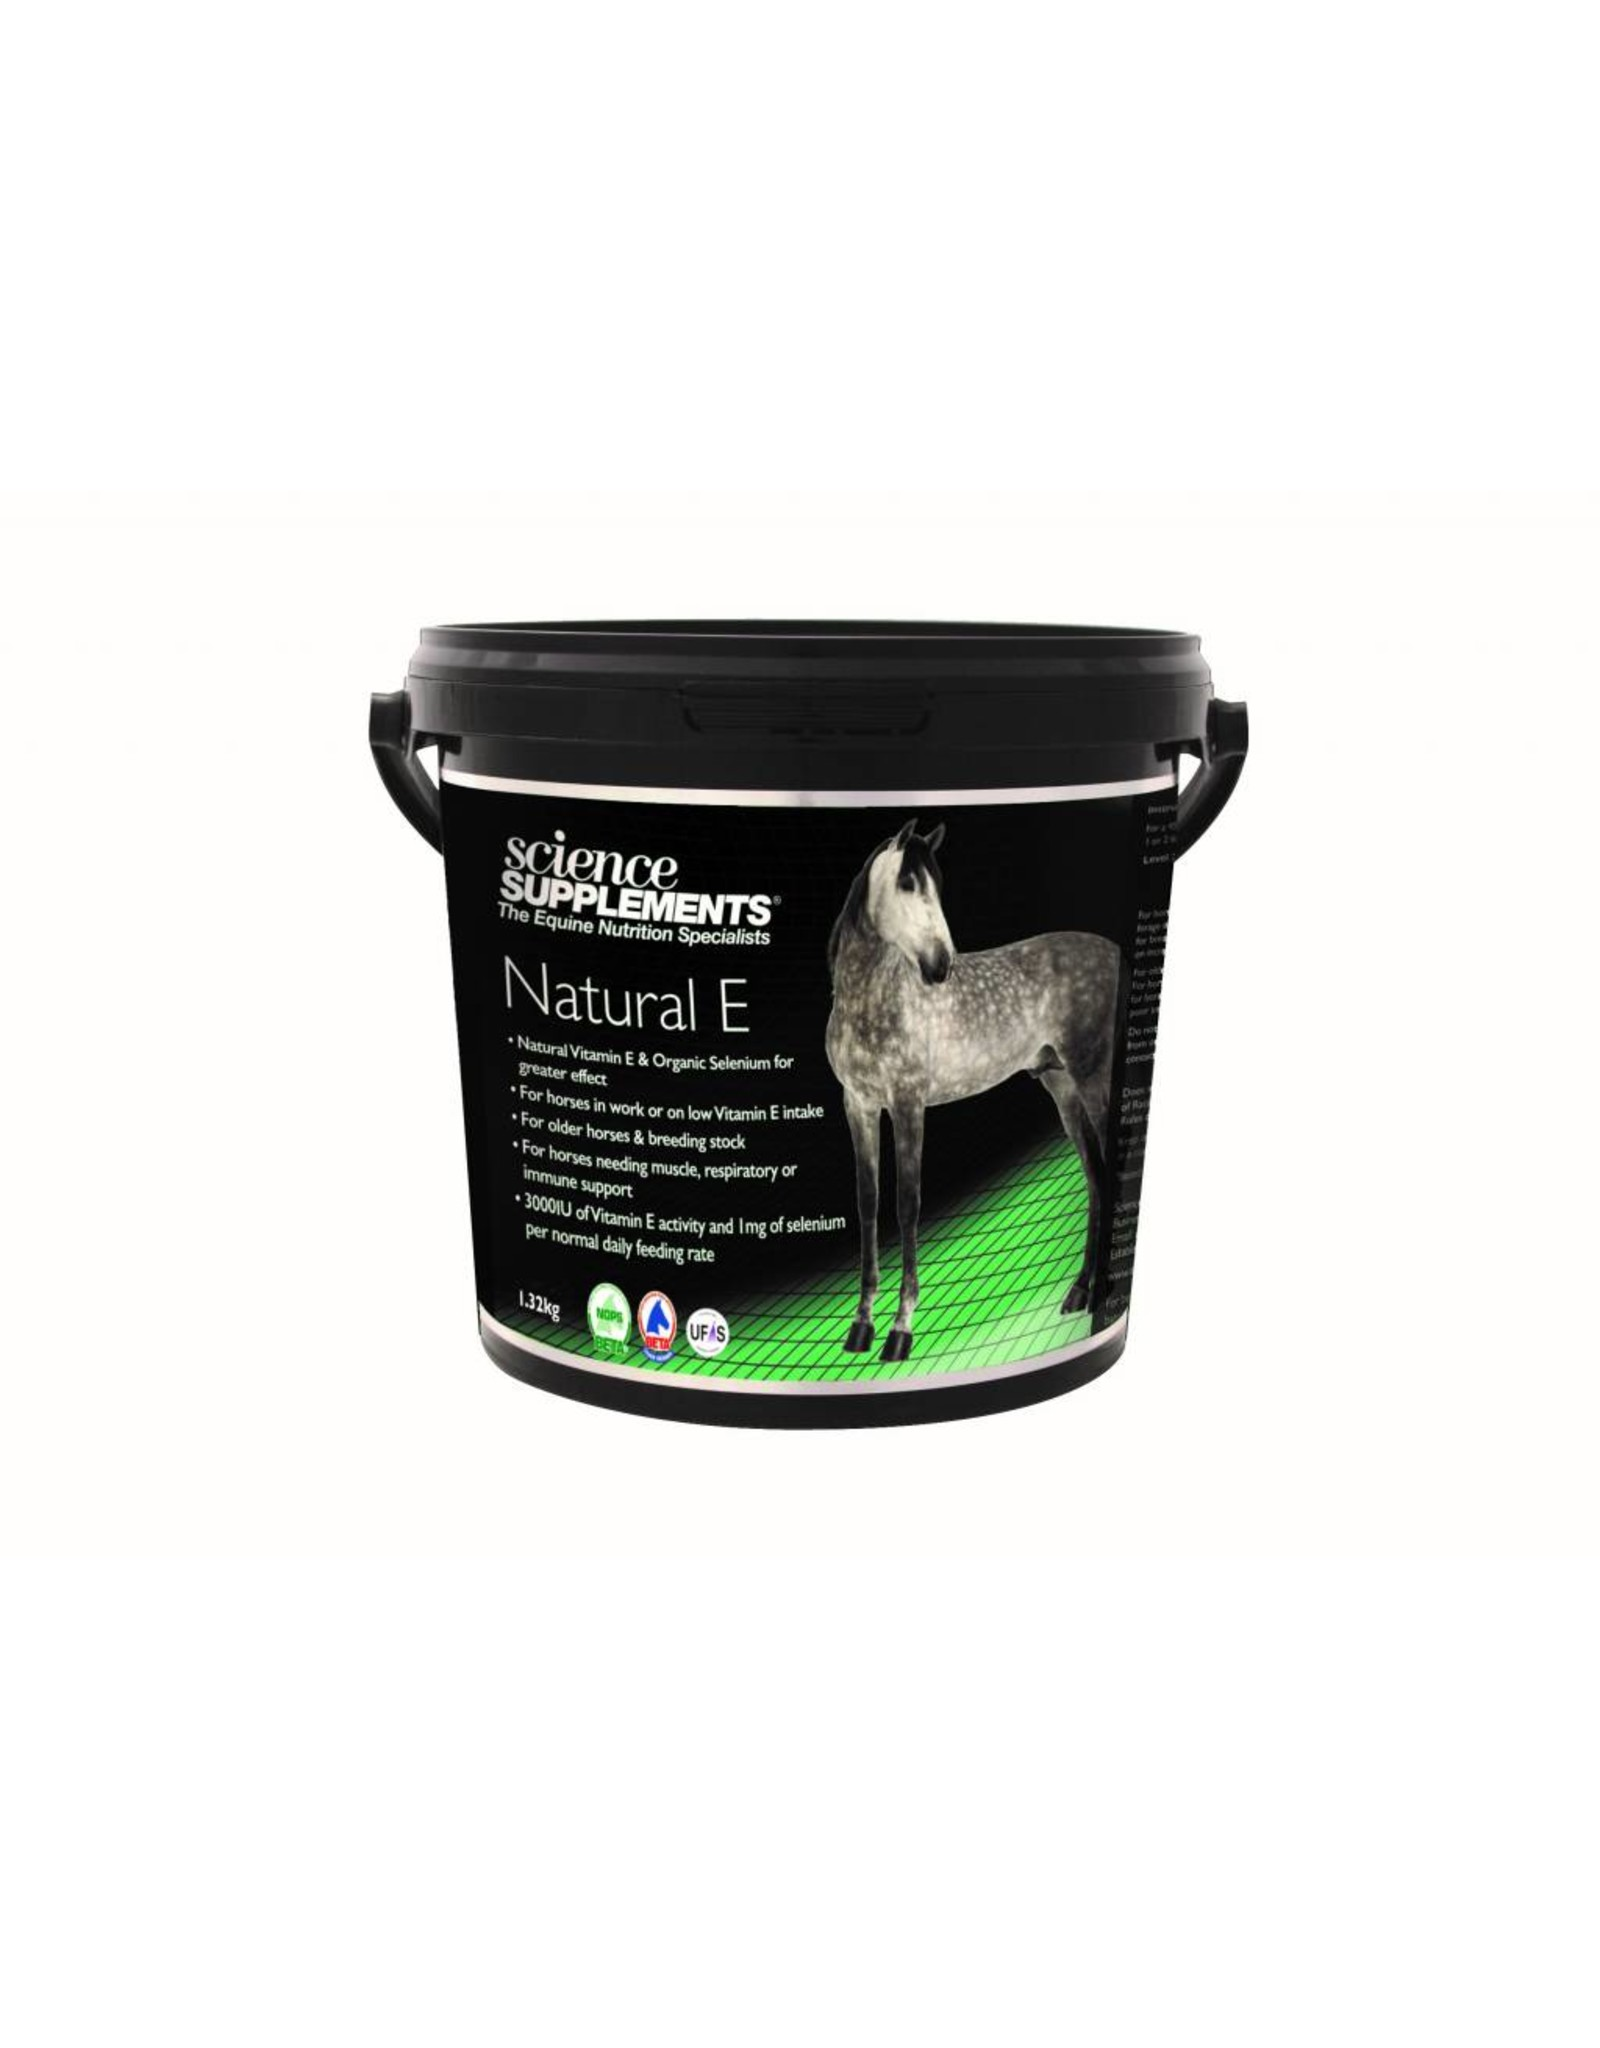 Science Supplements Natural E